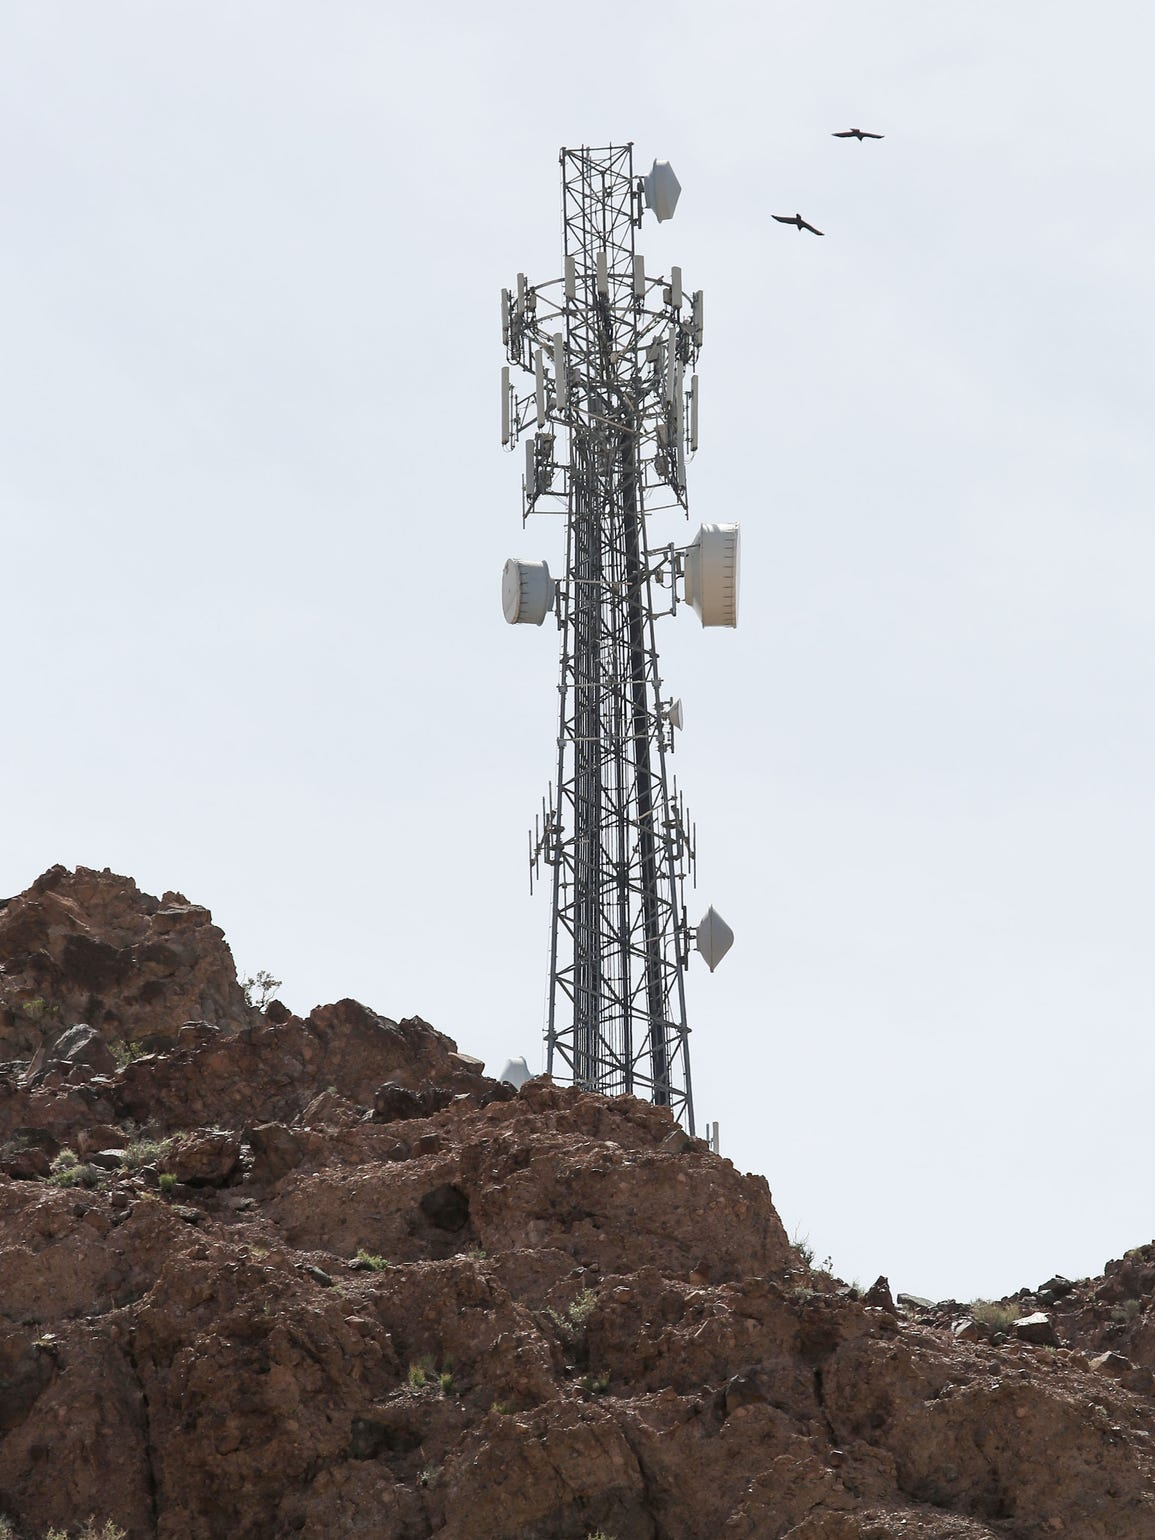 Tom Gammon's company, Interconnect Towers, built this cell tower in a desolate area along Interstate 40 in the California desert.